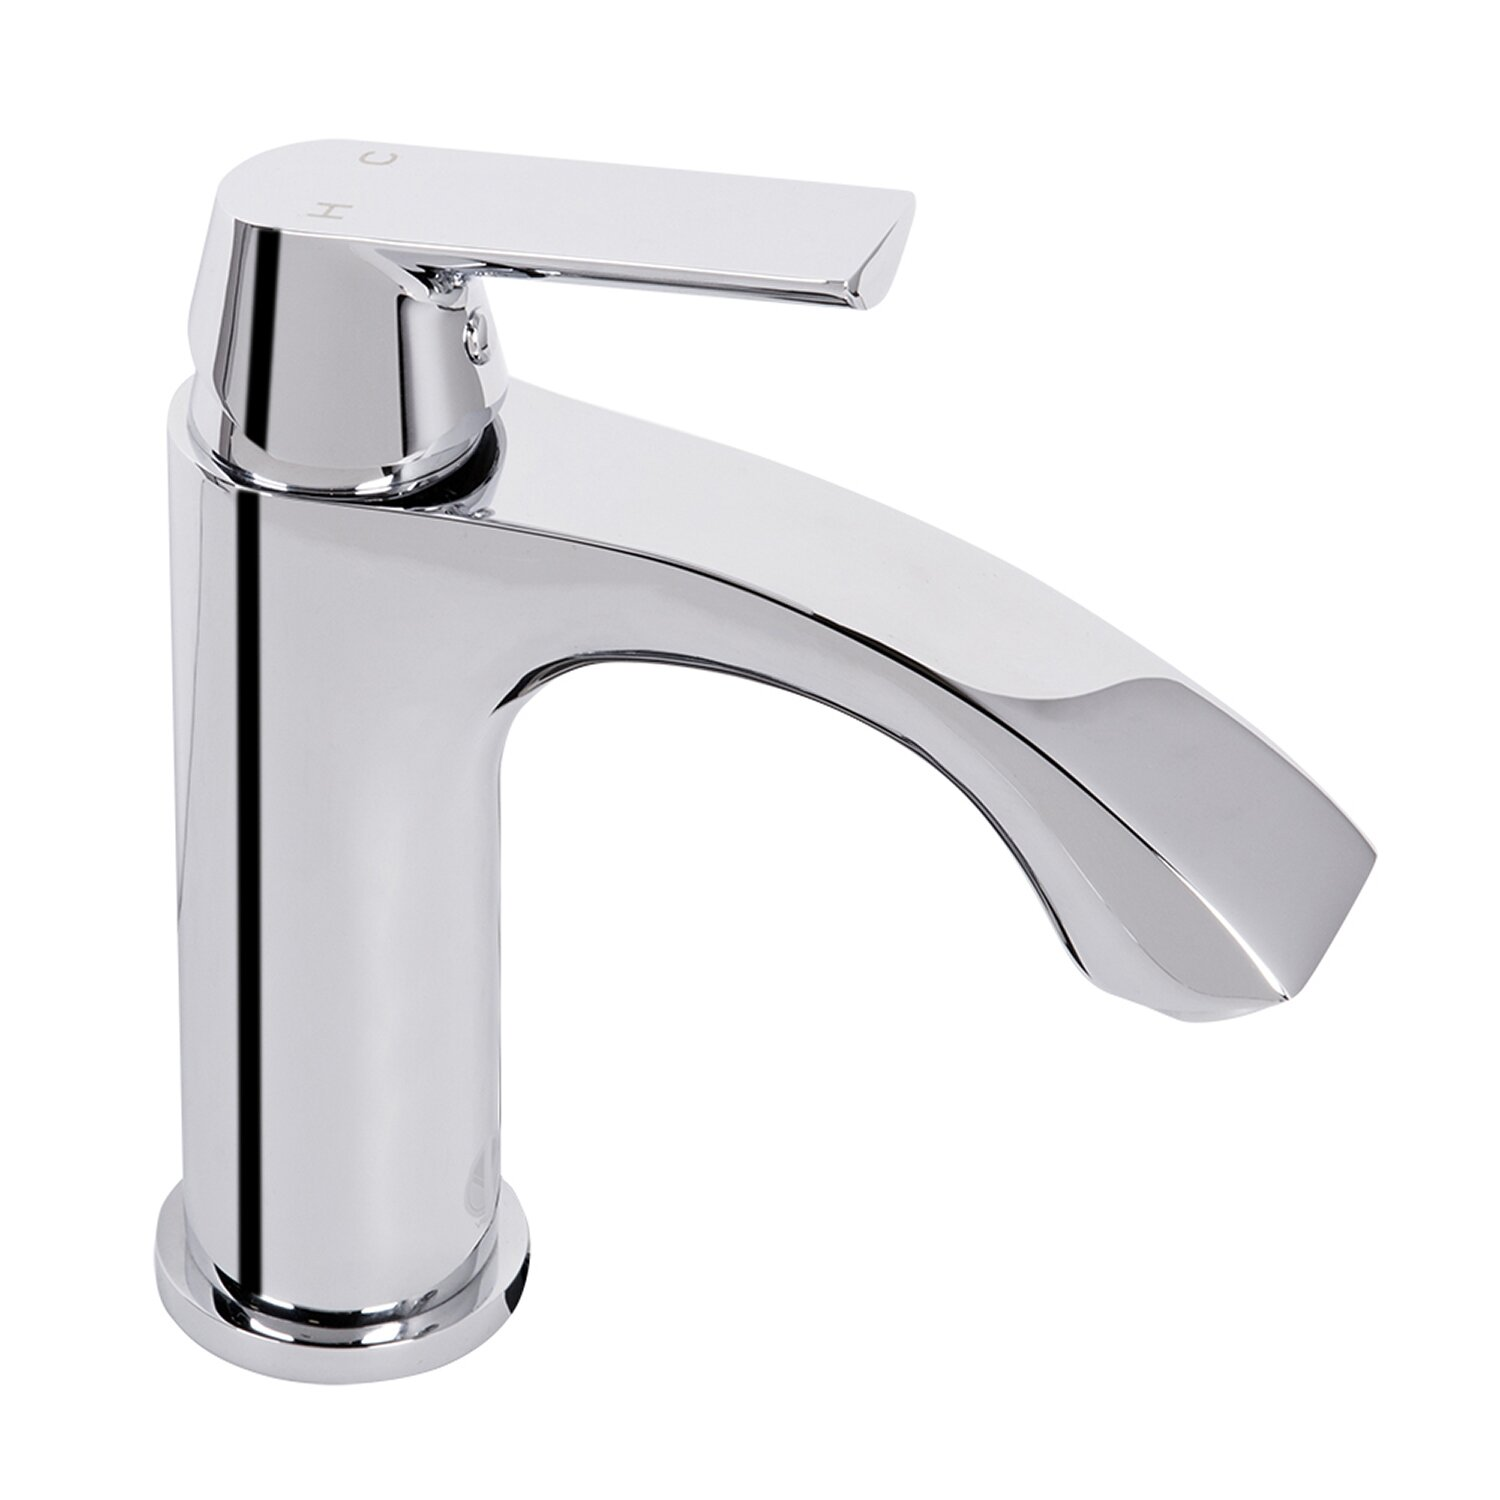 Single Lever Bathroom Faucets: Vigo Penela Single Lever Basin Bathroom Faucet & Reviews